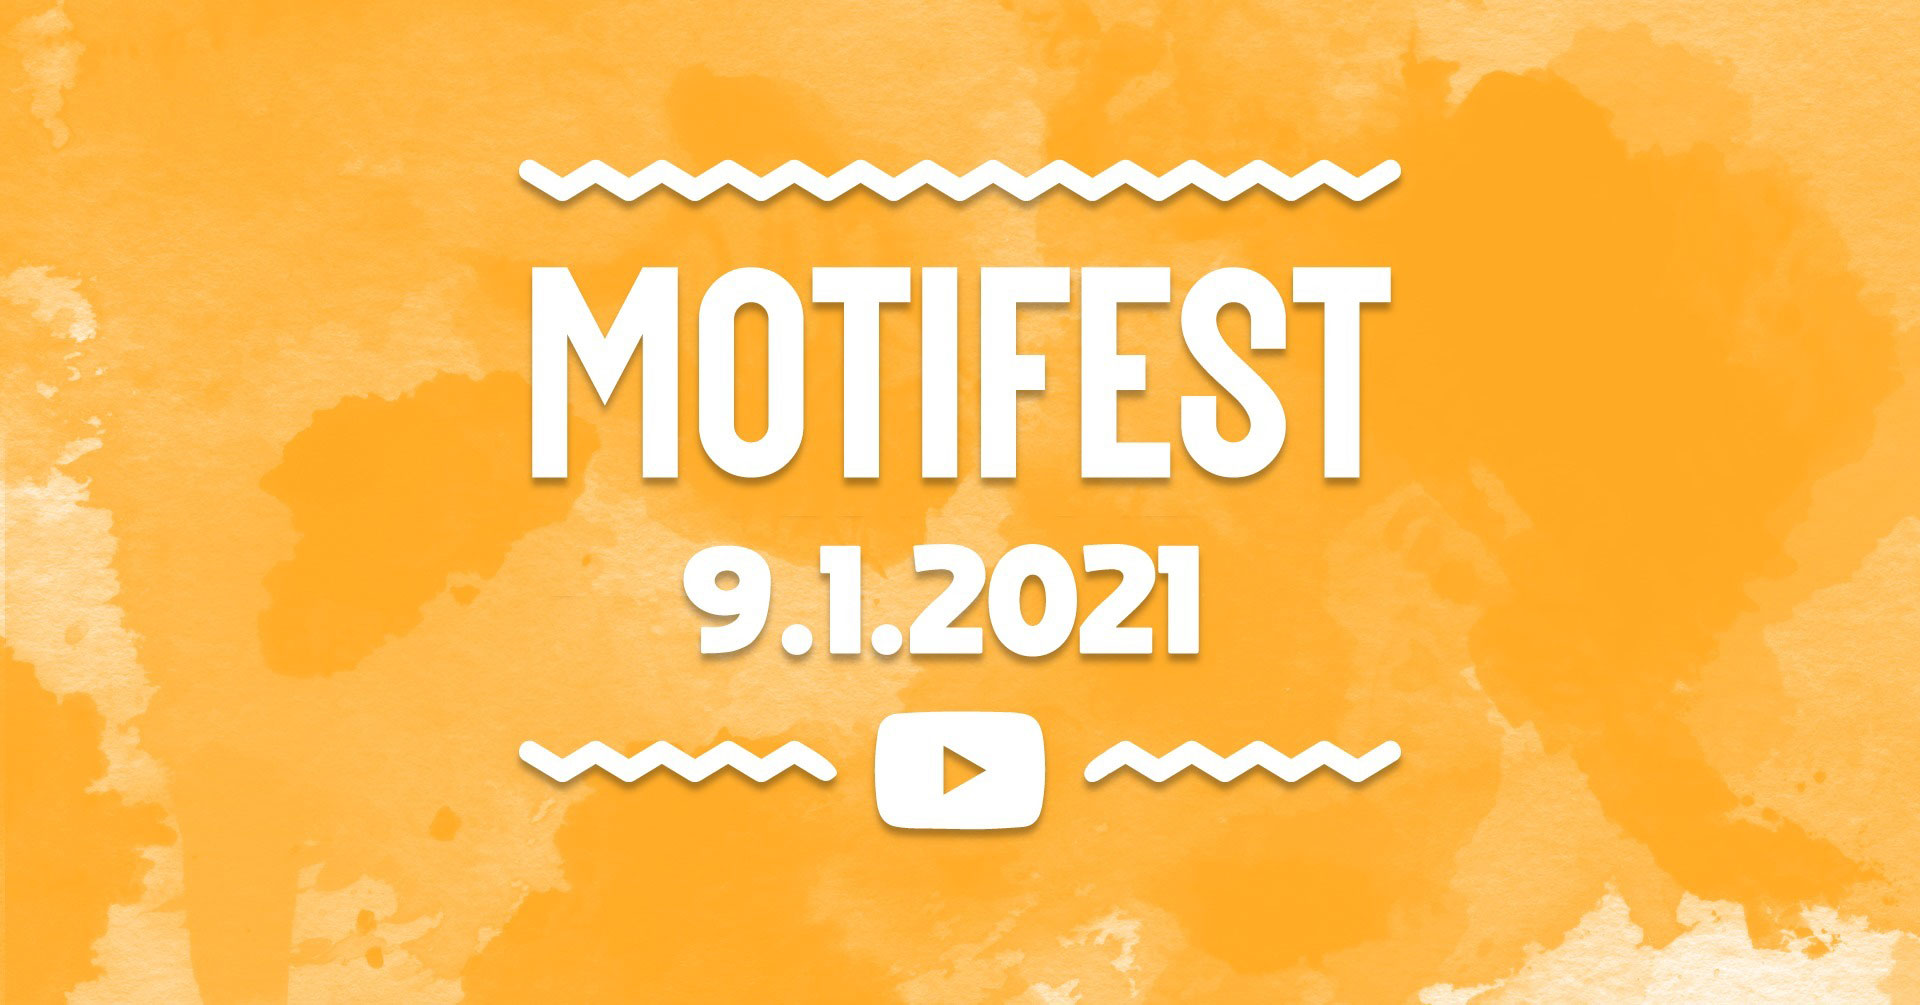 Link to event MotiFest